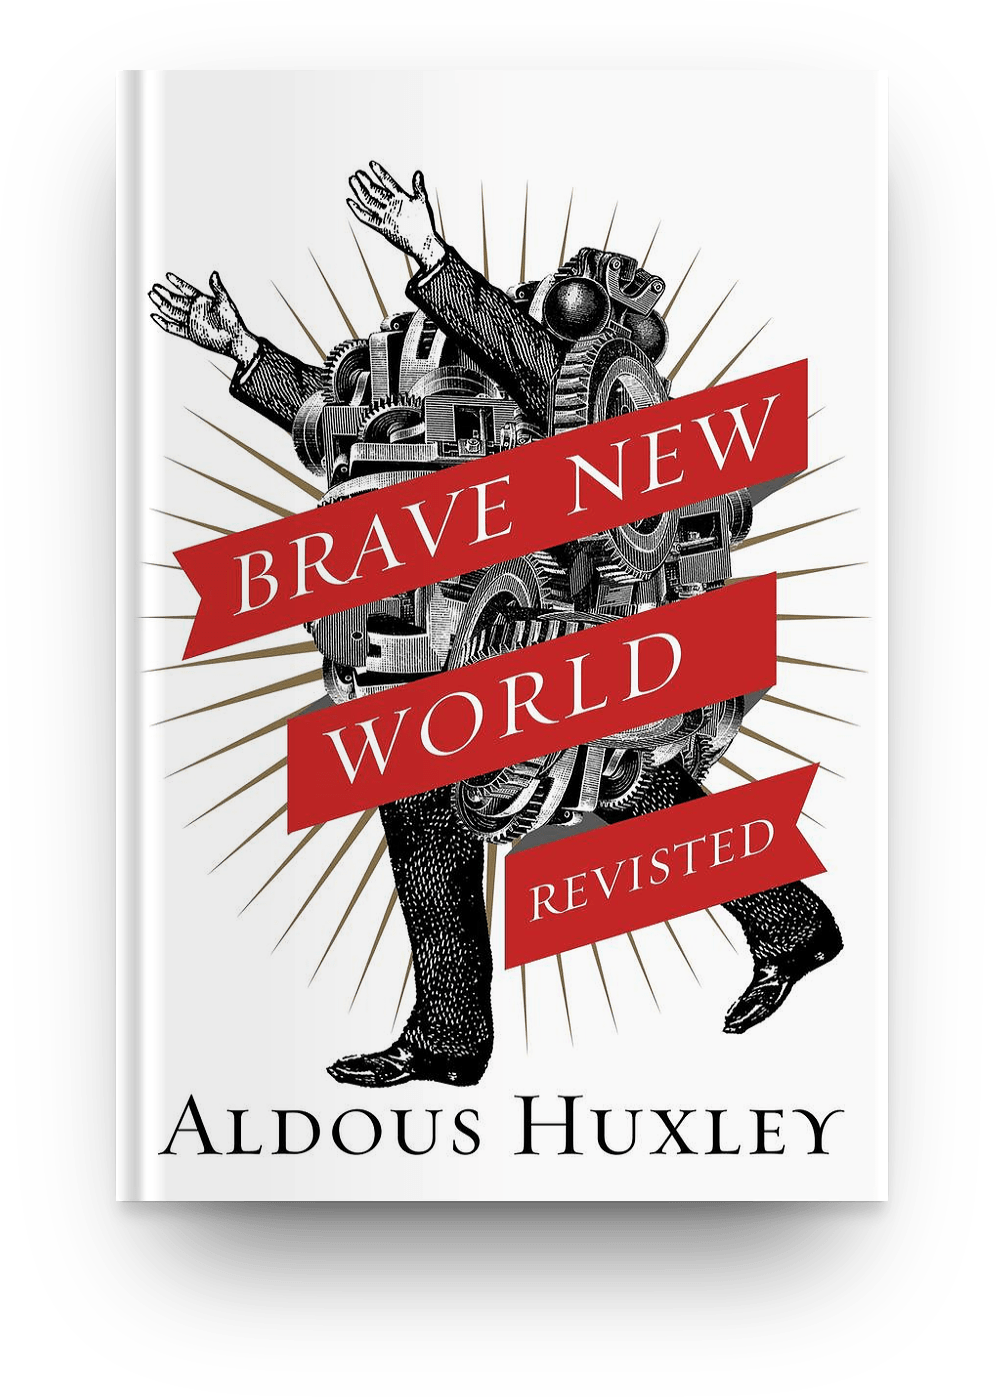 Brave New World (1932) book cover